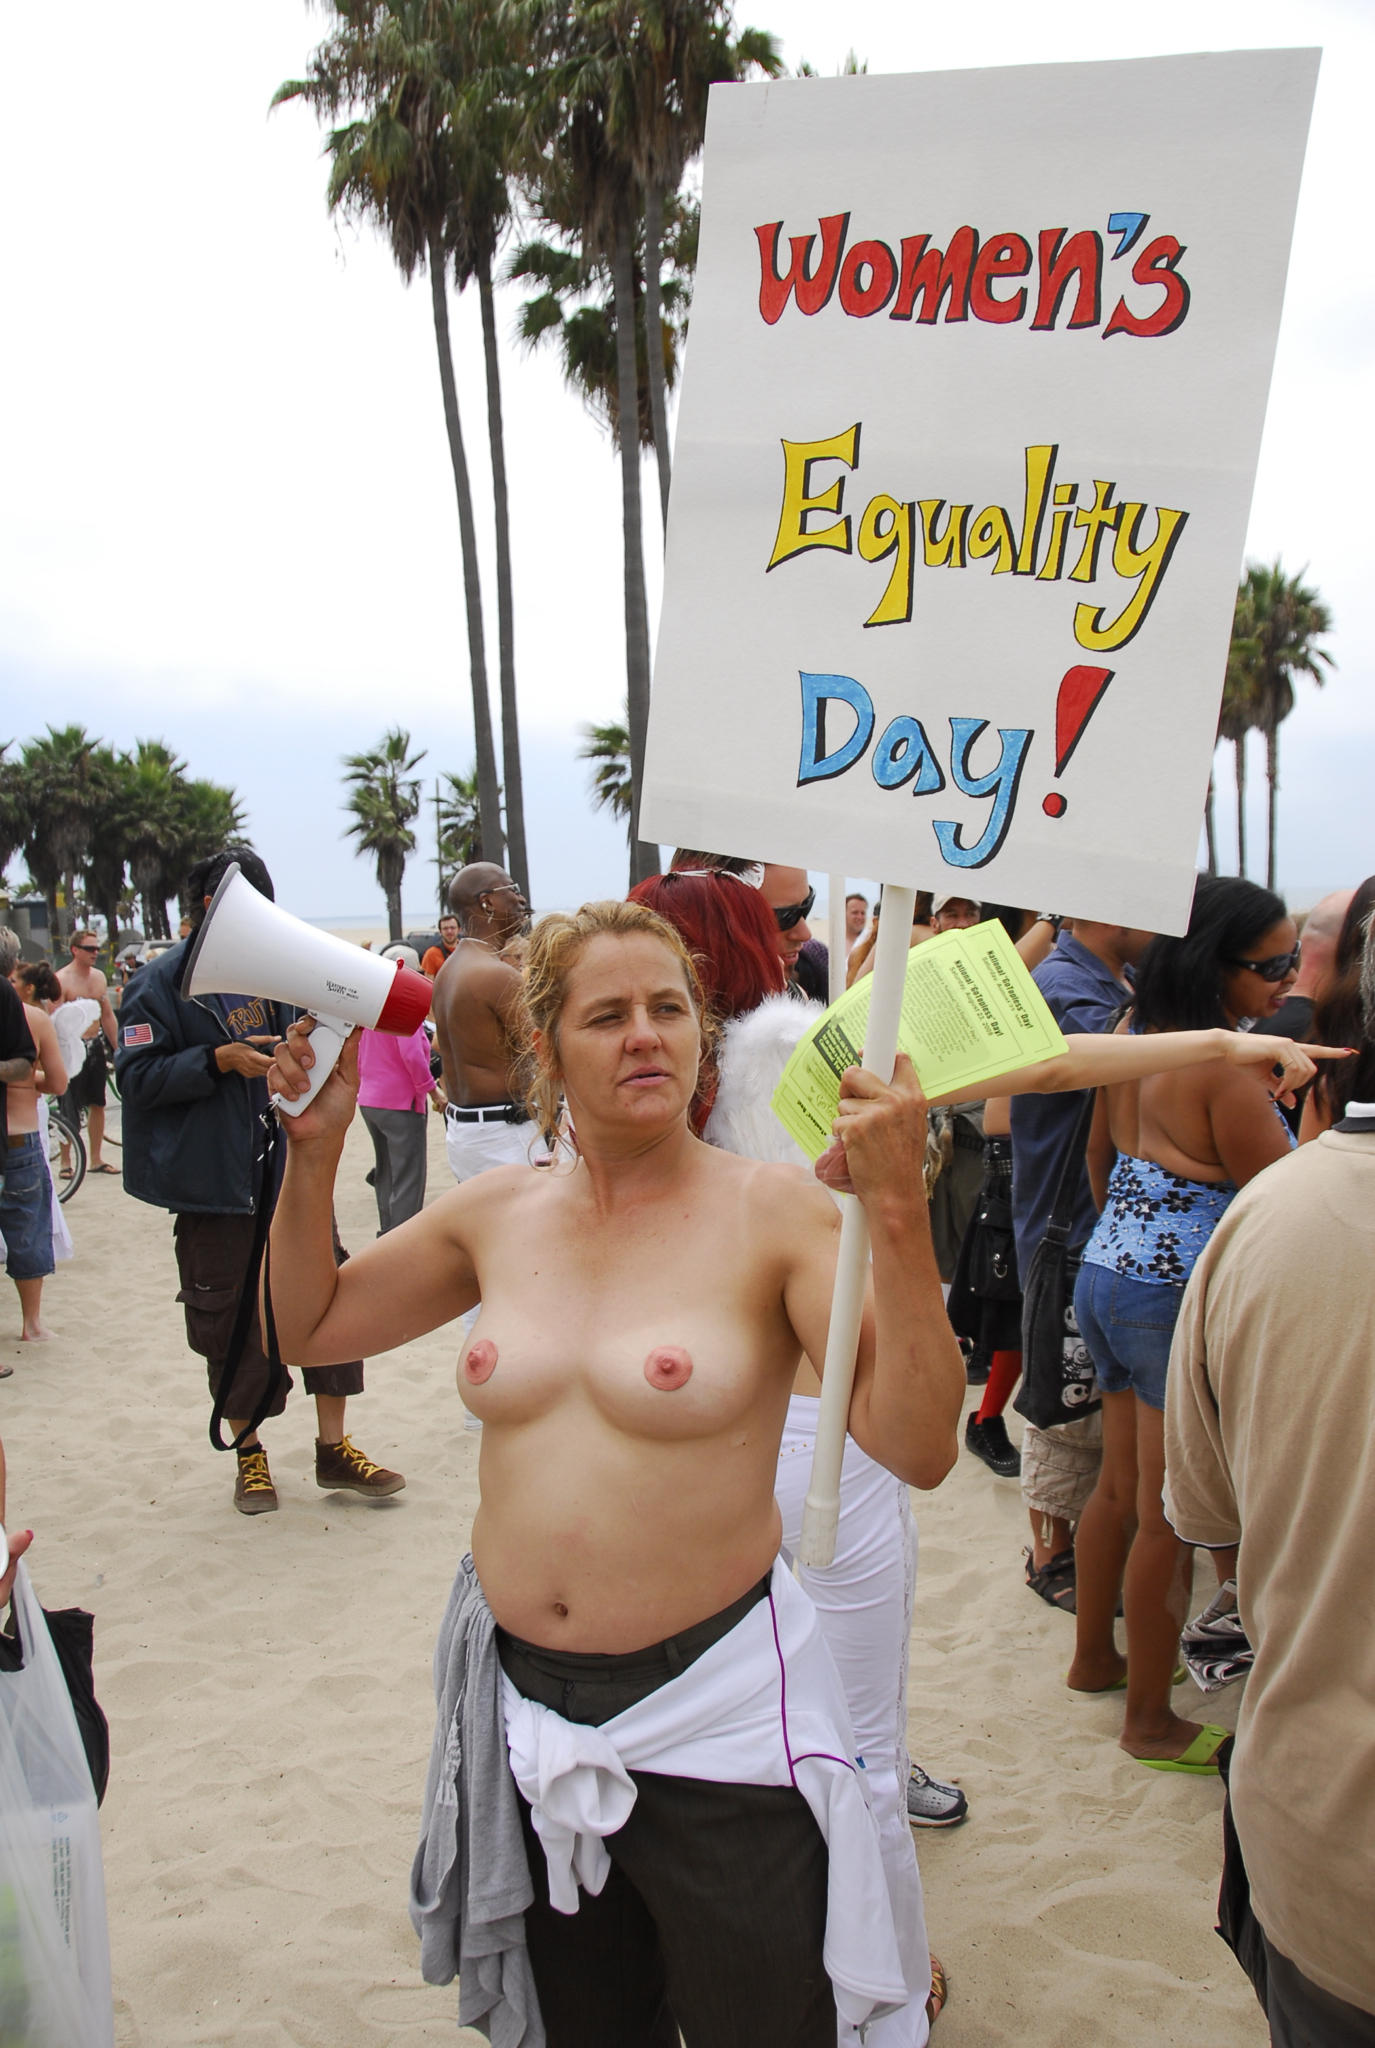 Does The Us Have A Problem With Topless Women